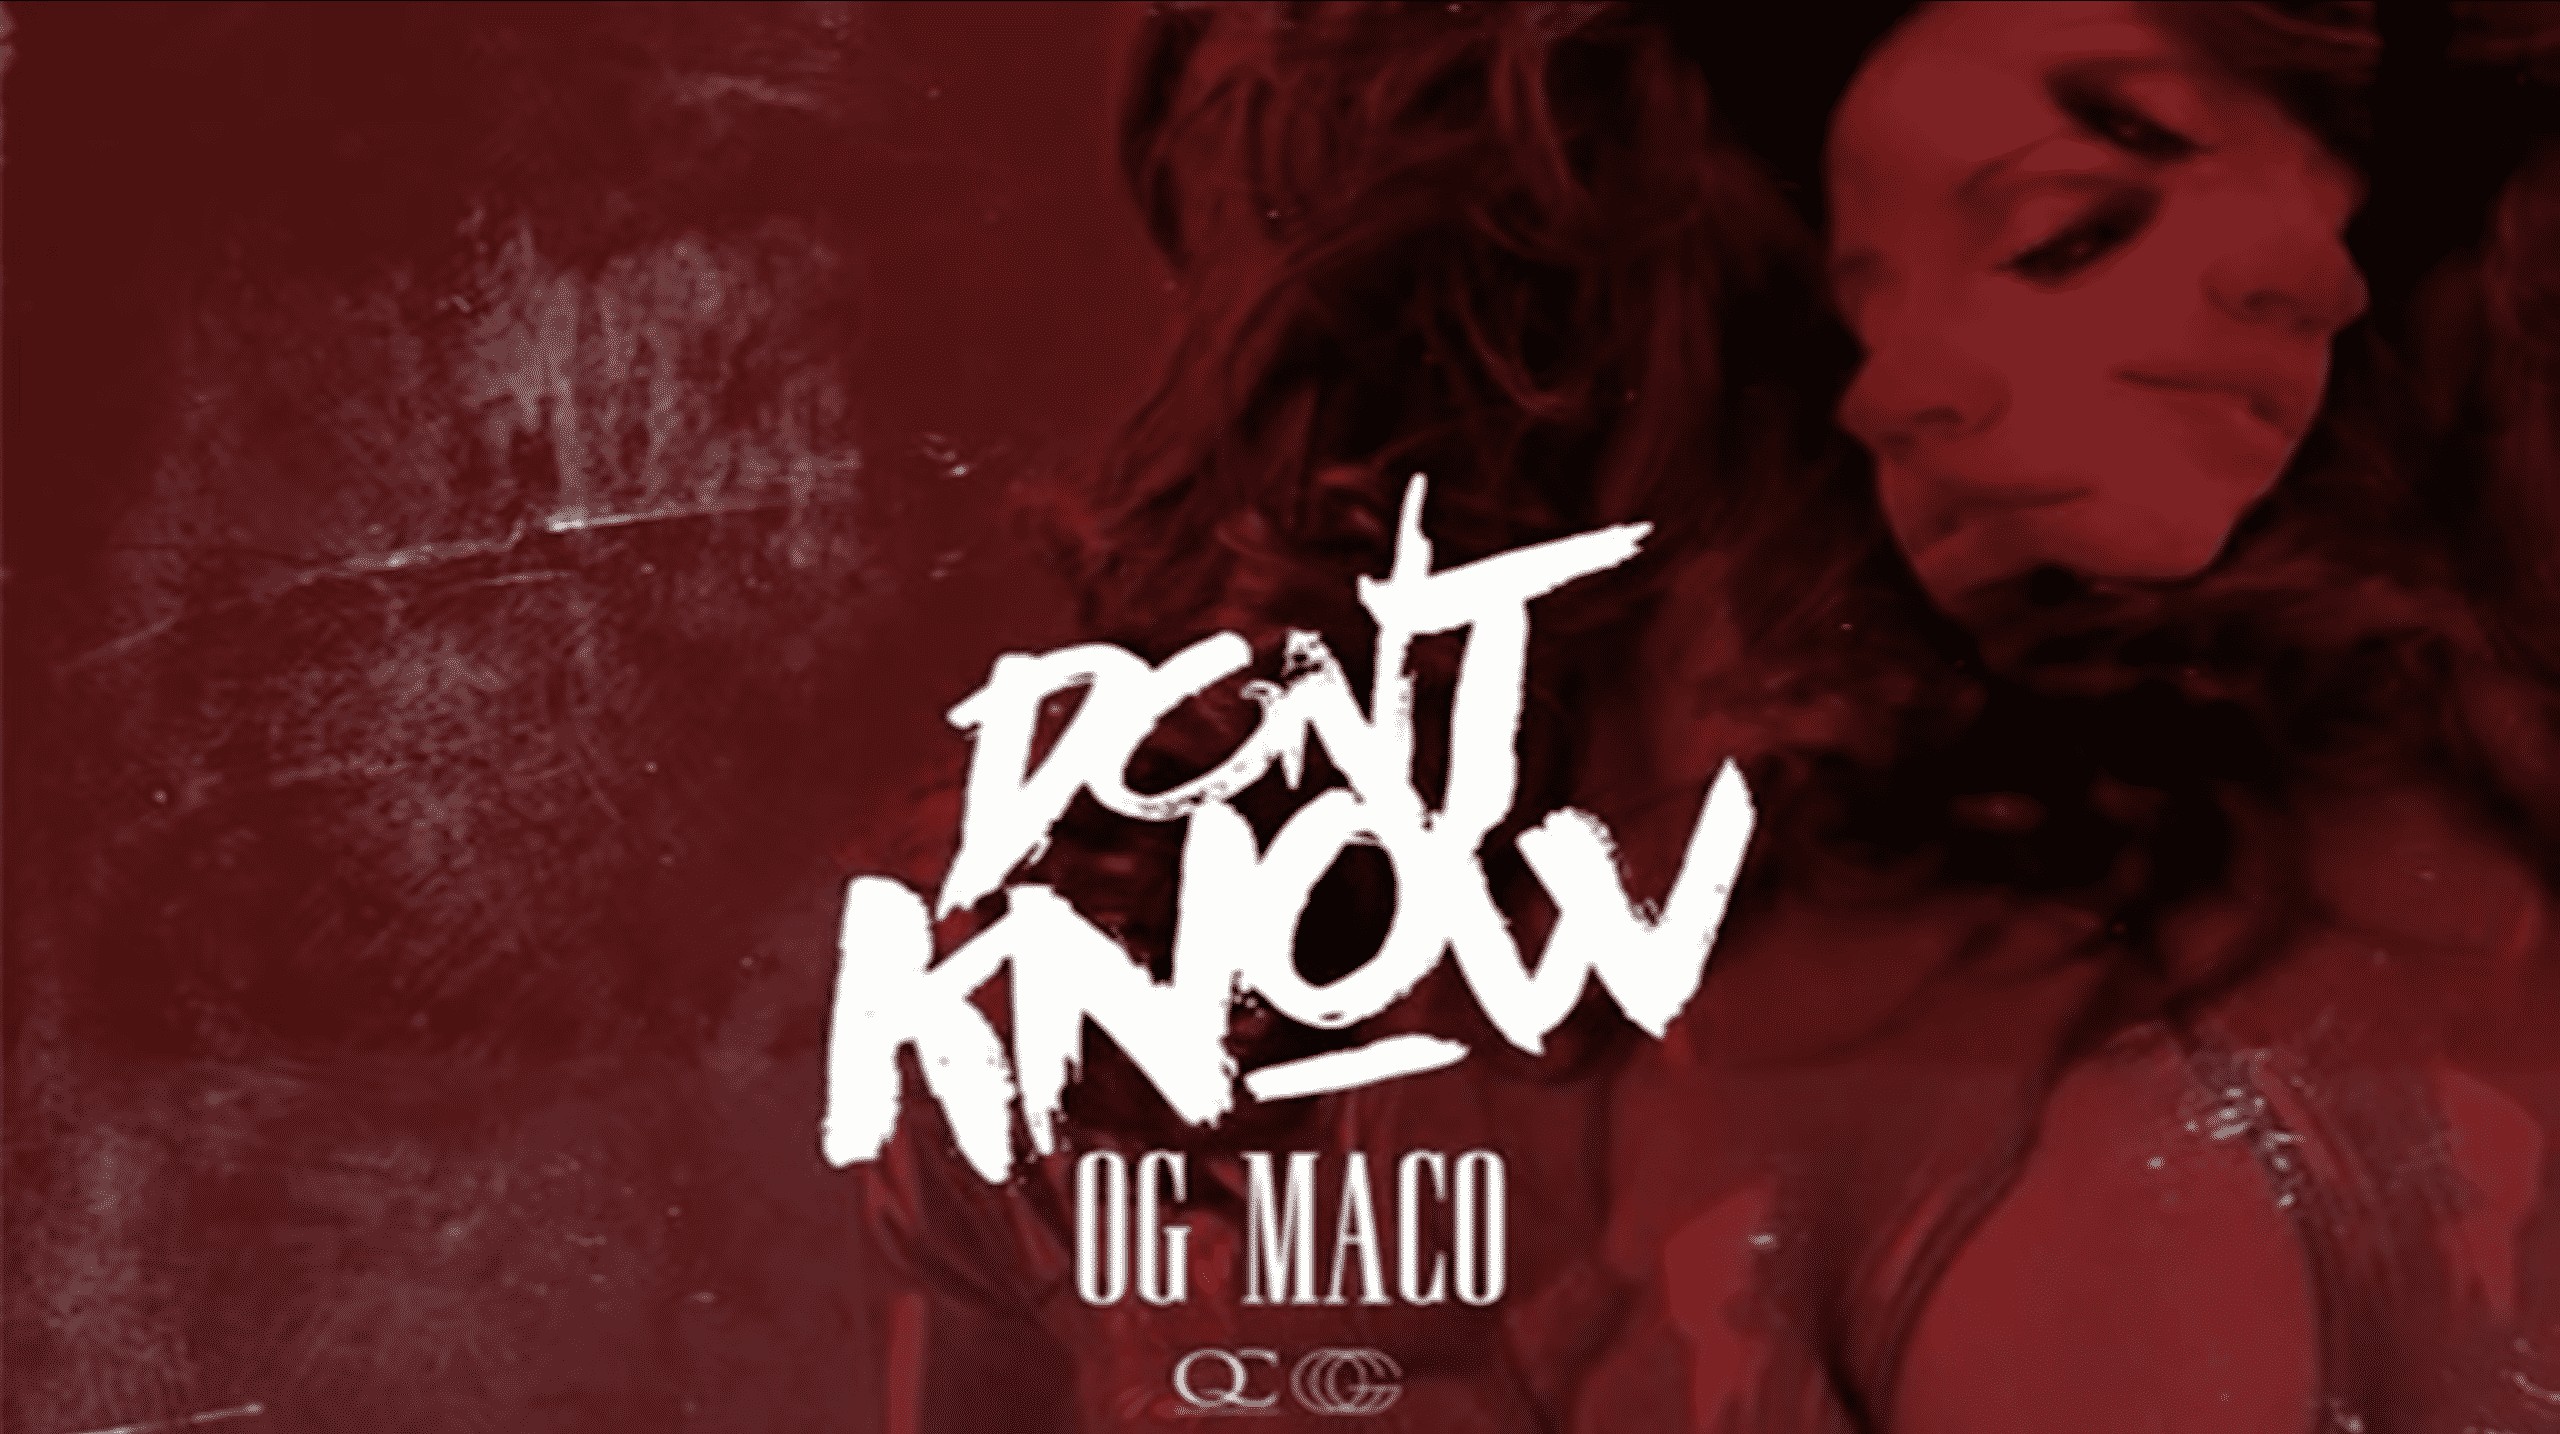 image og maco son don't know